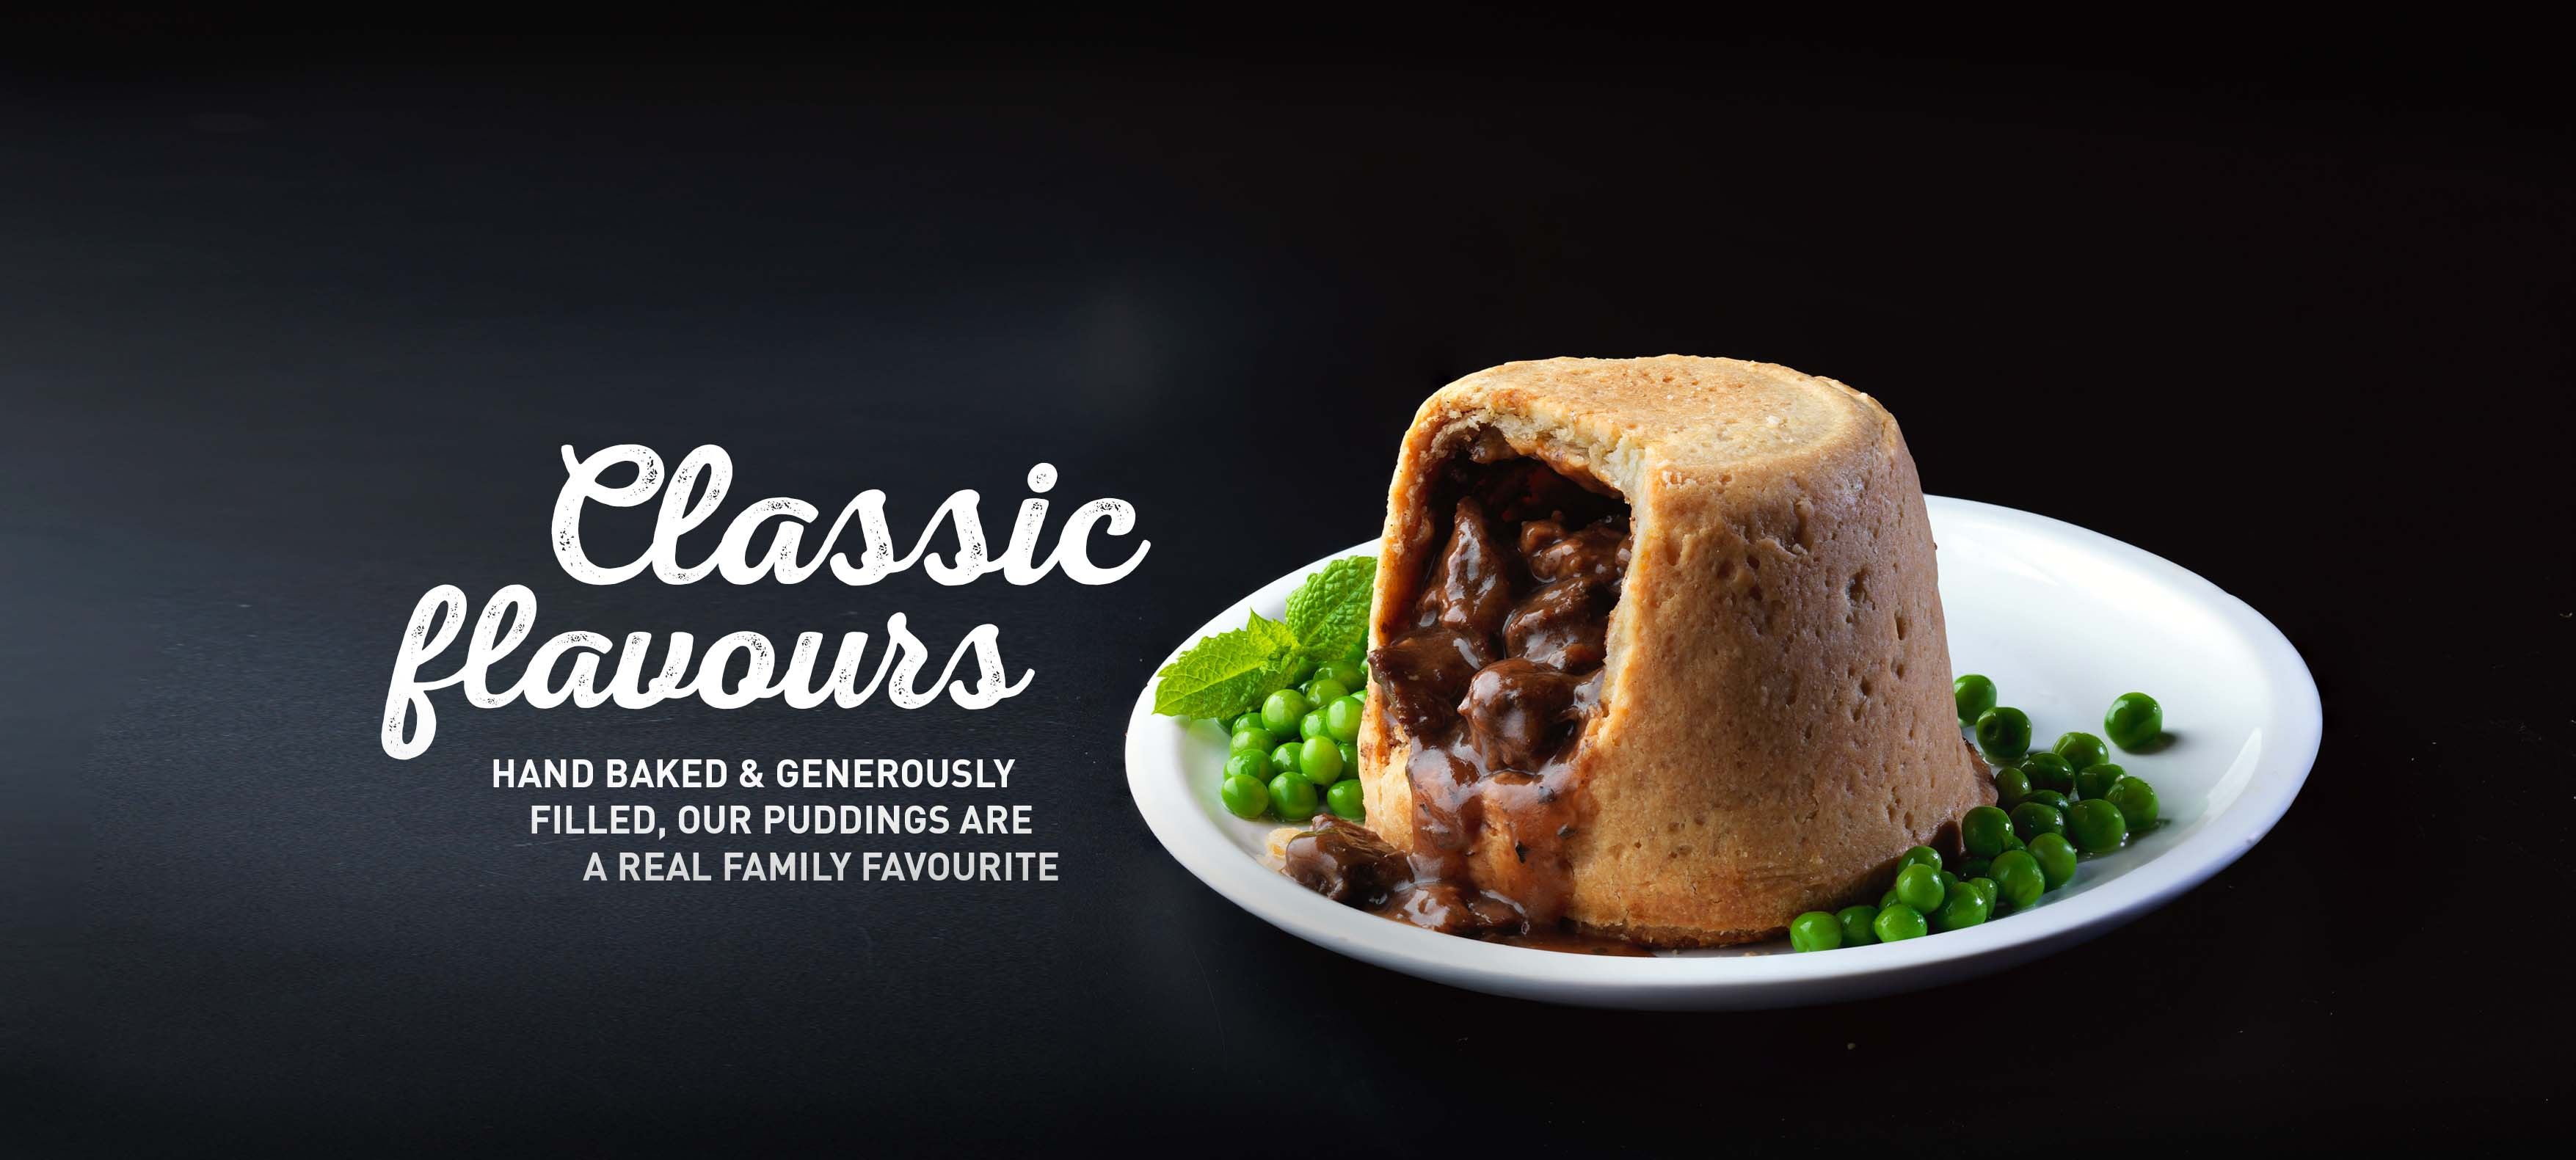 Steak & Kidney Pudding Home Shot - GBP